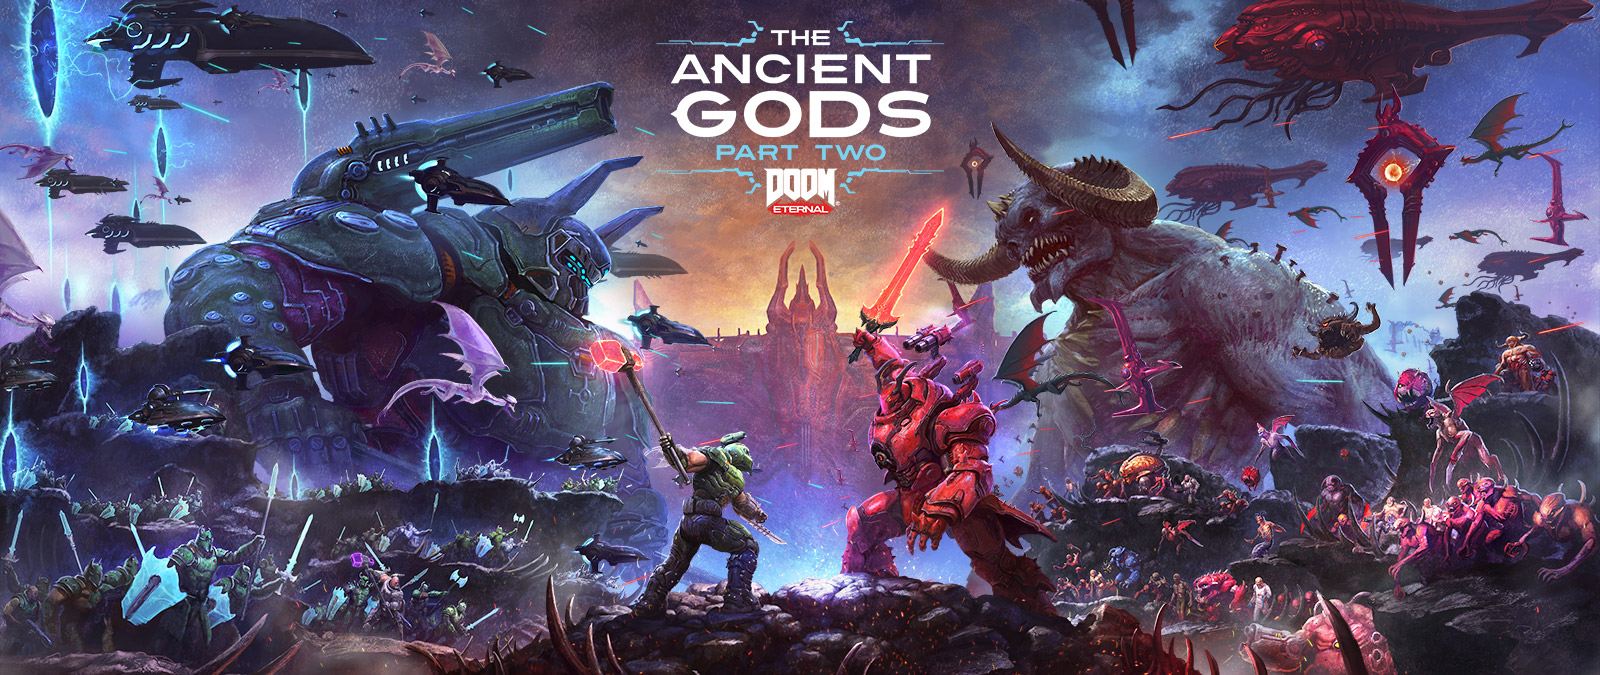 DOOM Eternal, The Ancient Gods Part Two, En episk kamp mellom Slayers og Demons på et steinete helvete.